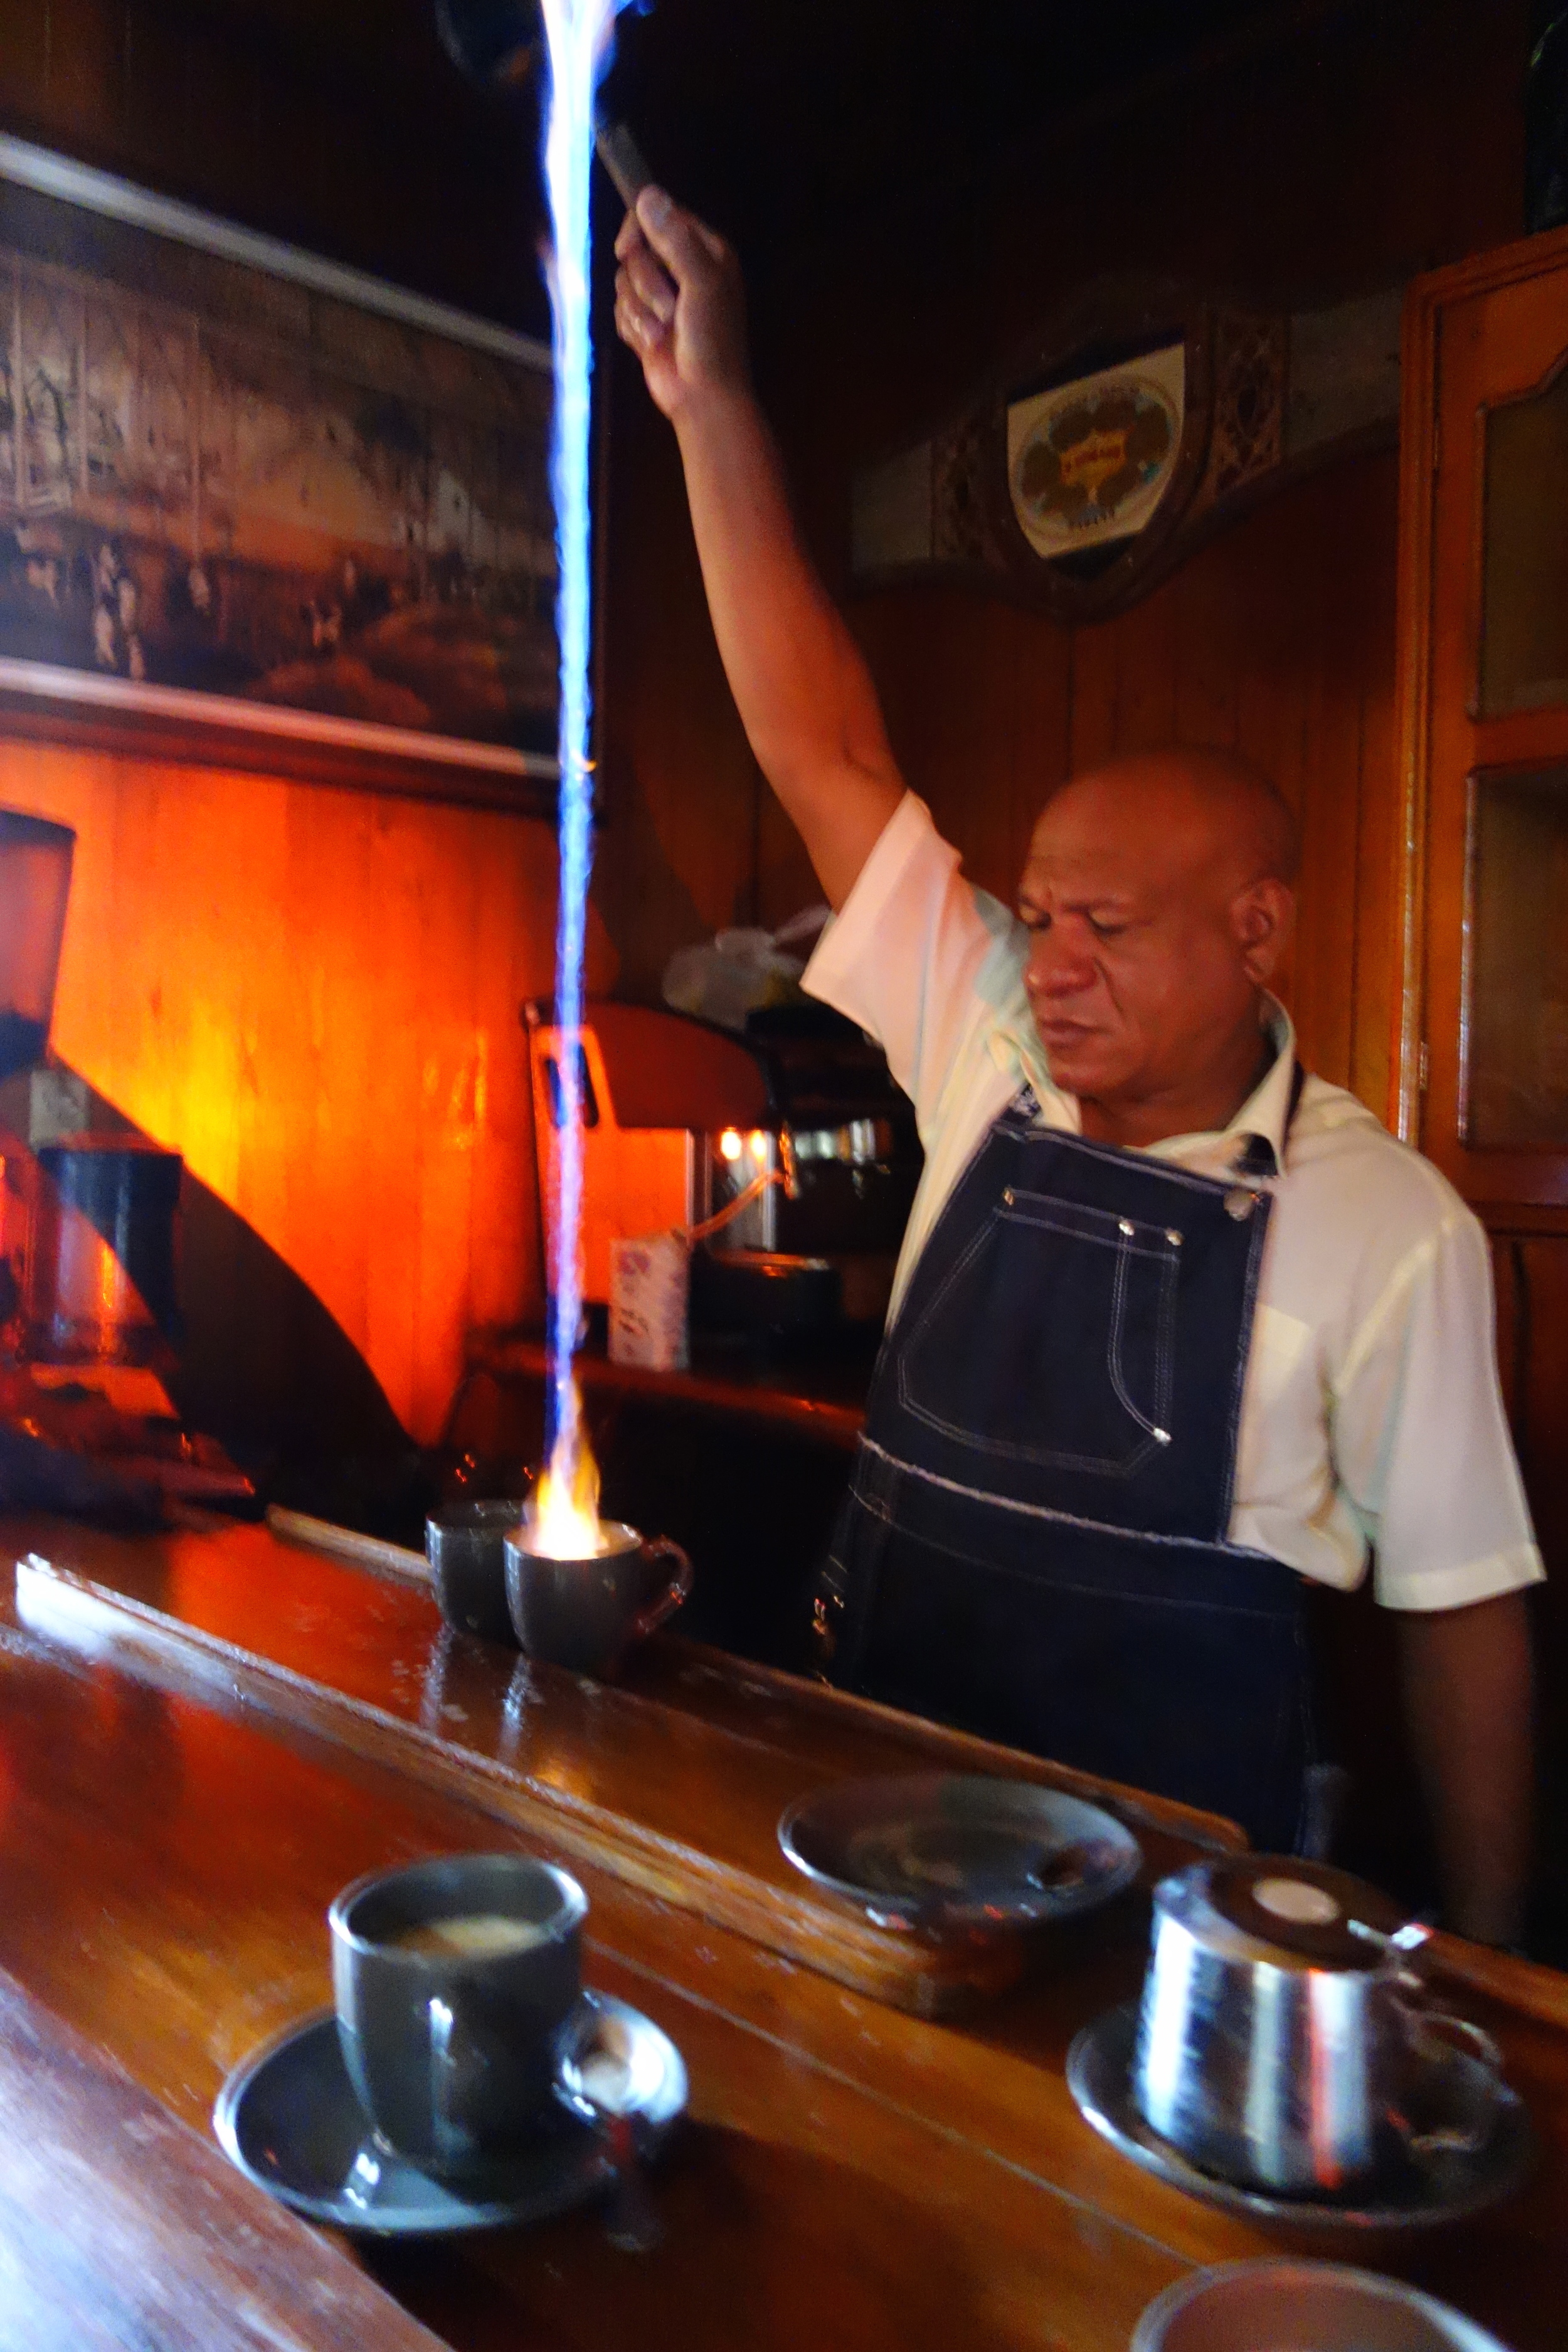 Inside the Legendario rum factory, the barista ignites rum and pours it into steamed milk for the most delicious spiked latte.